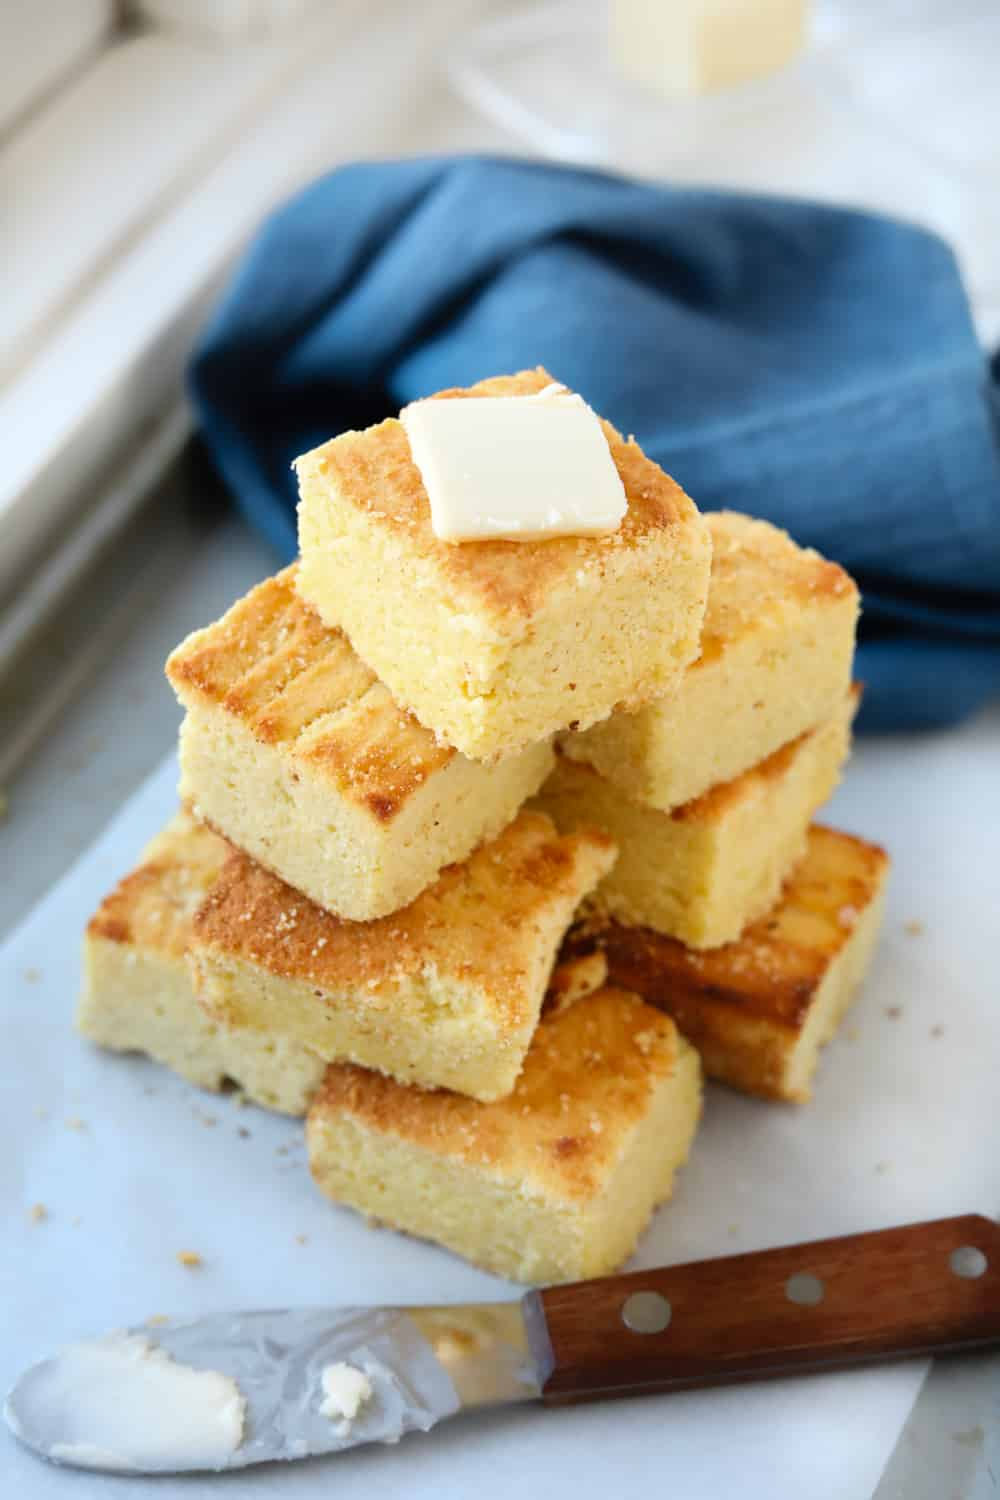 A baking sheet lined with parchment paper with slices of cornbread stacked on it.